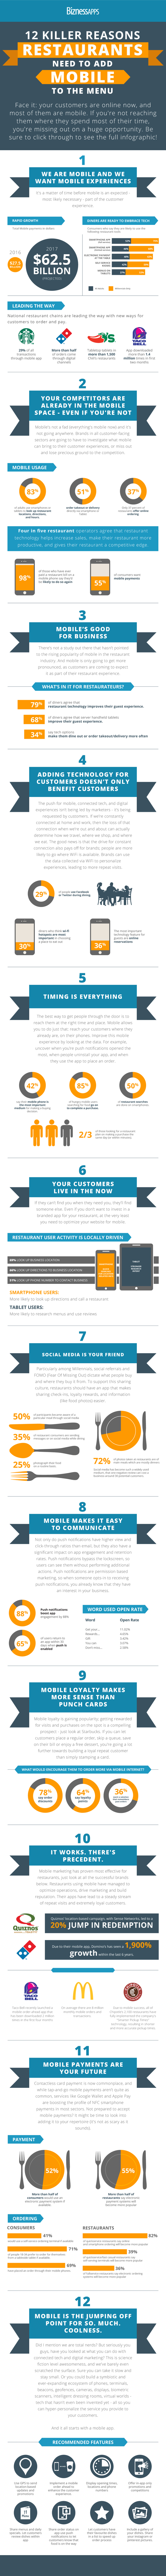 12 Killer Reasons Restaurants Need To Add Mobile To The Menu